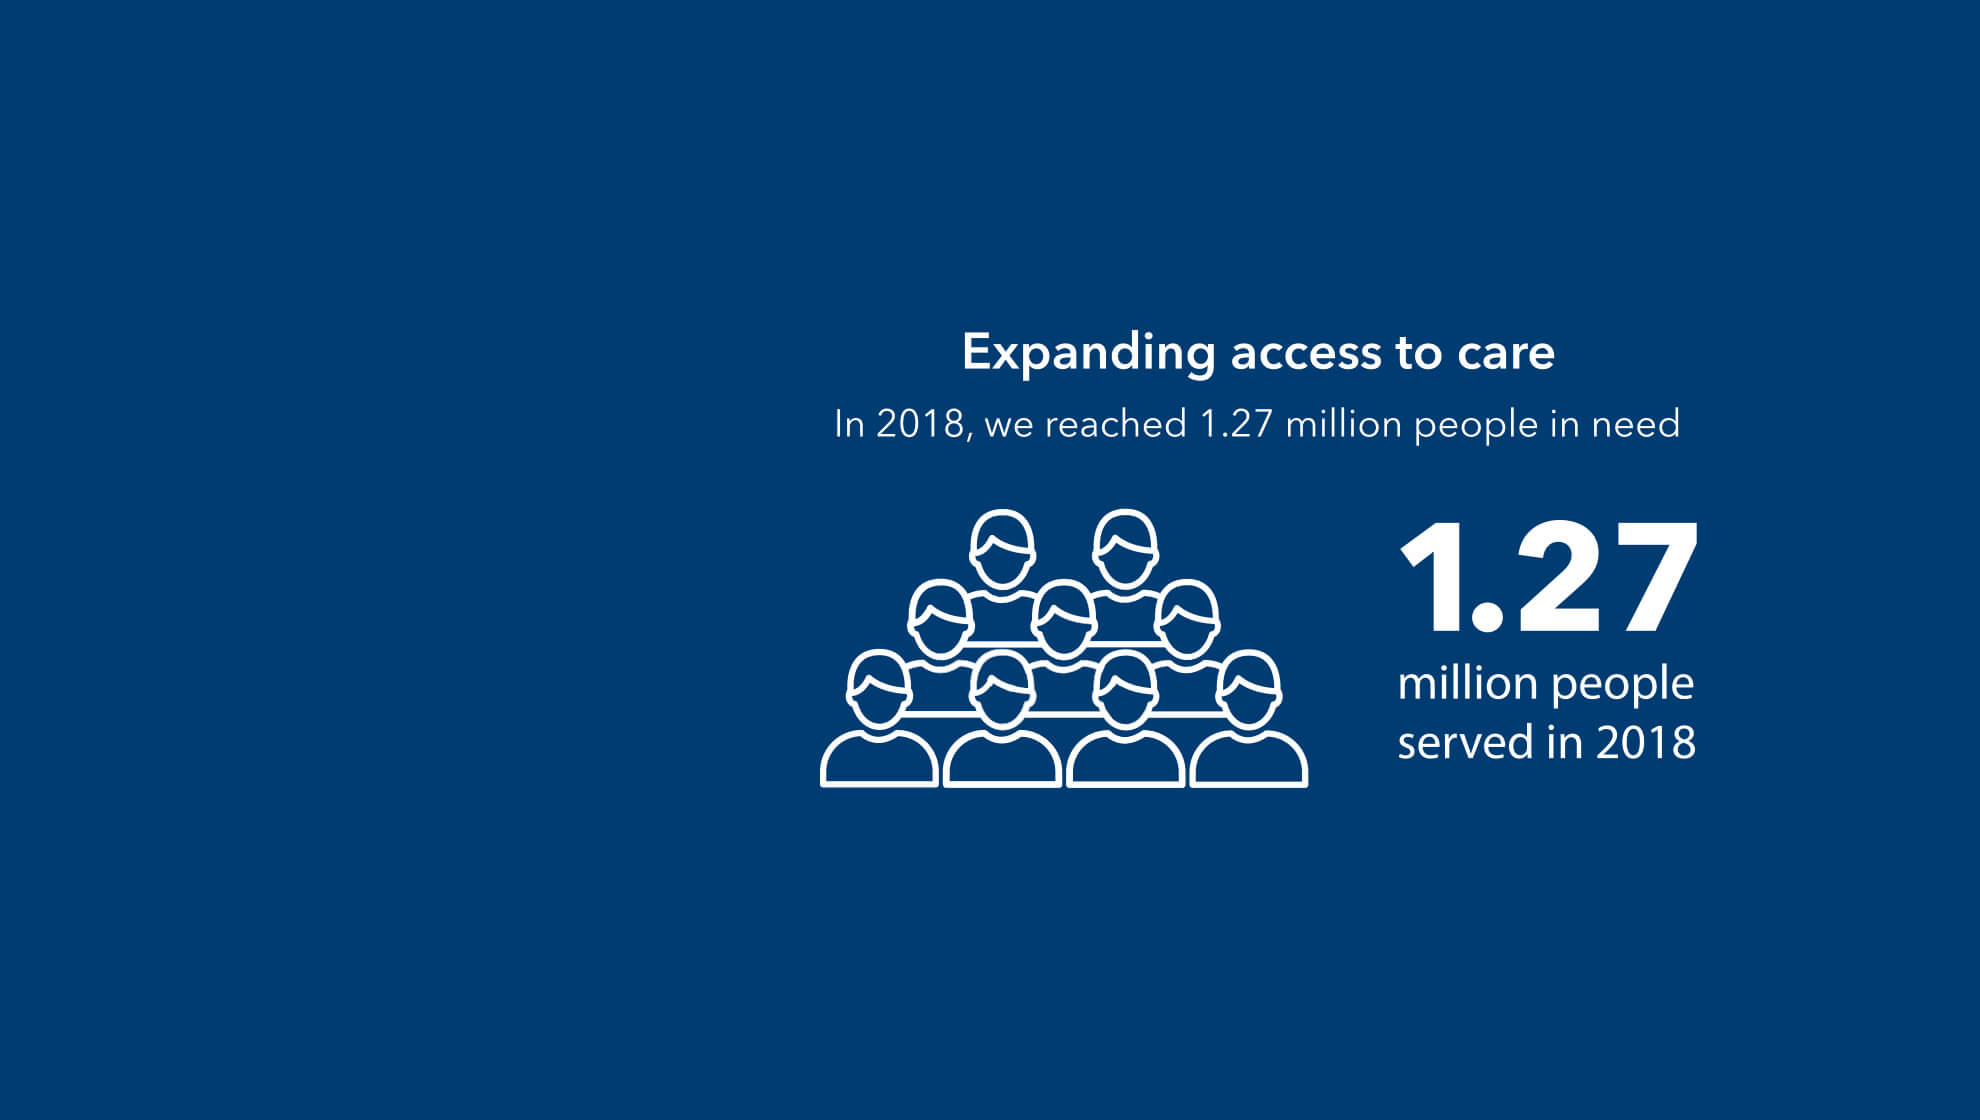 Expanding access to care. In 2018, we reached 1.27 million people in need